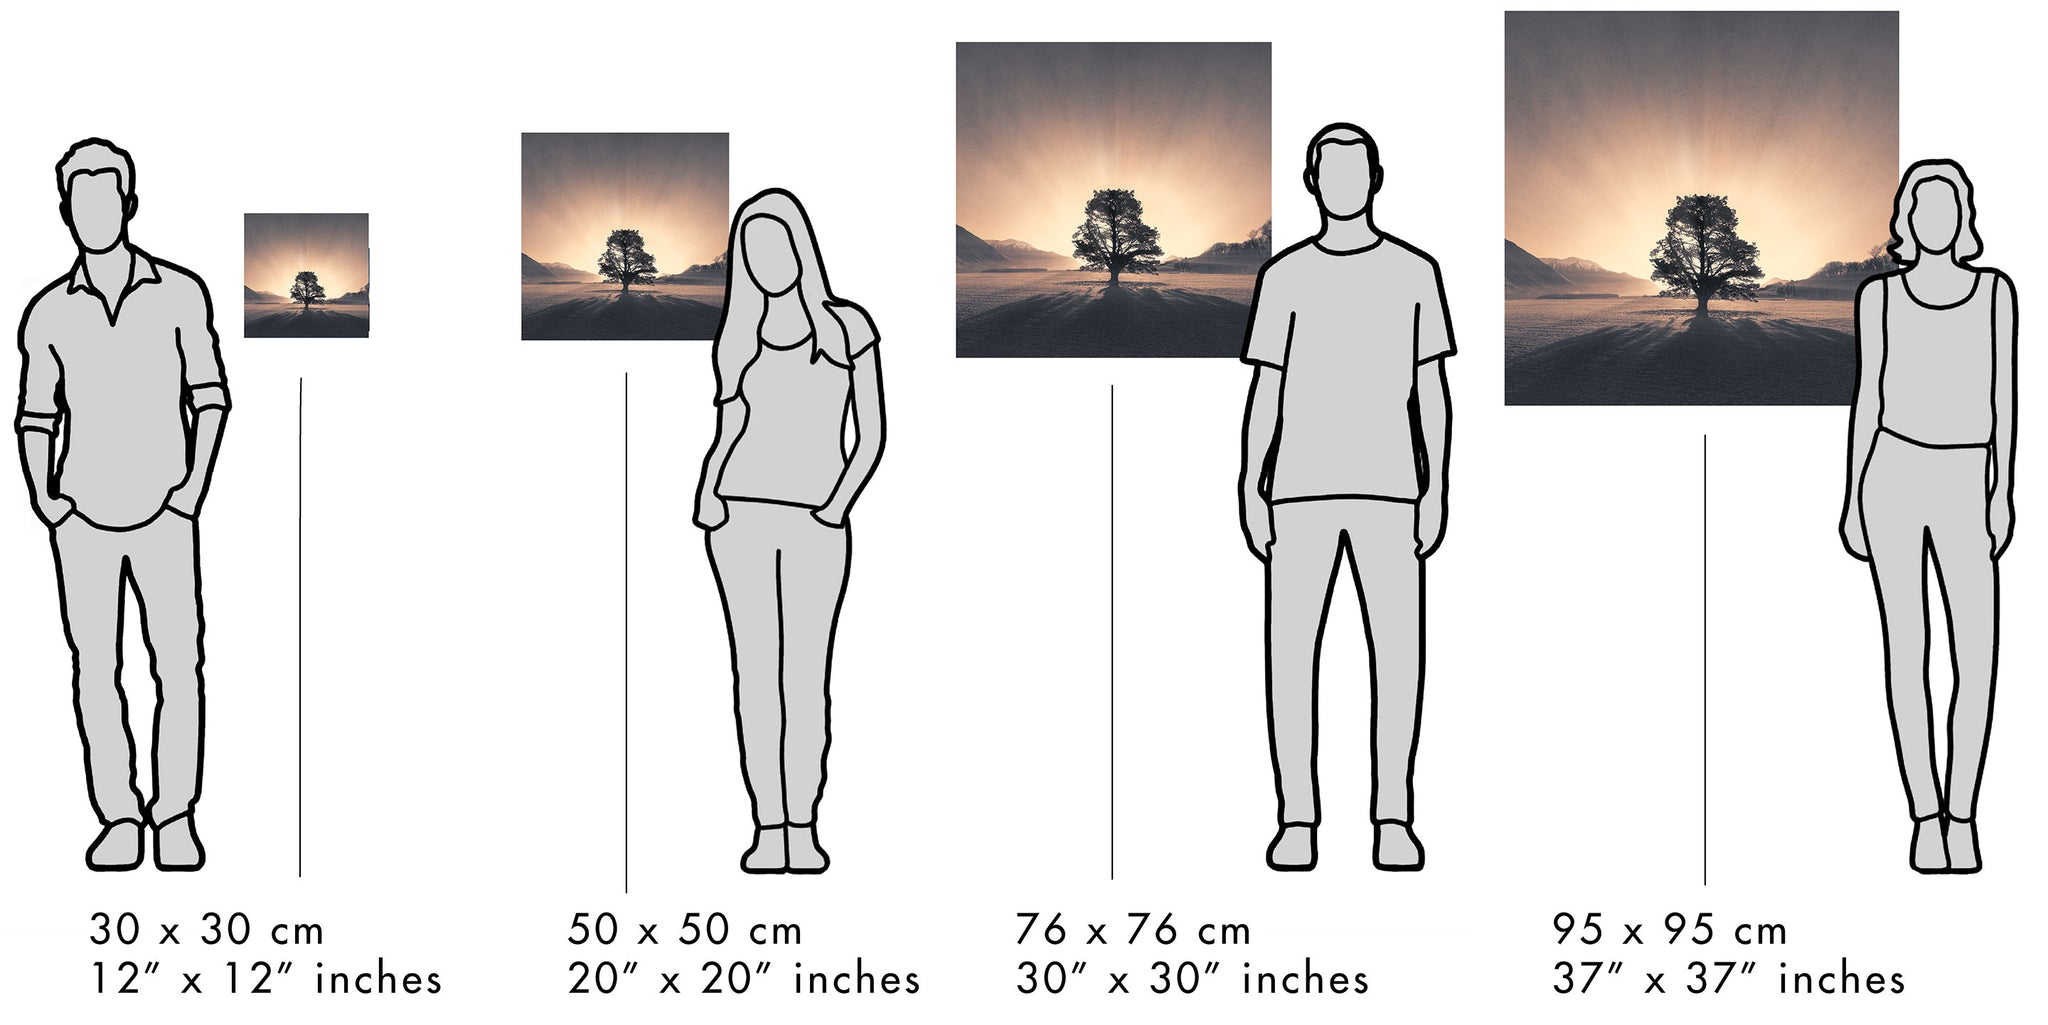 Visual guide to show the size of the photo prints against the height of people